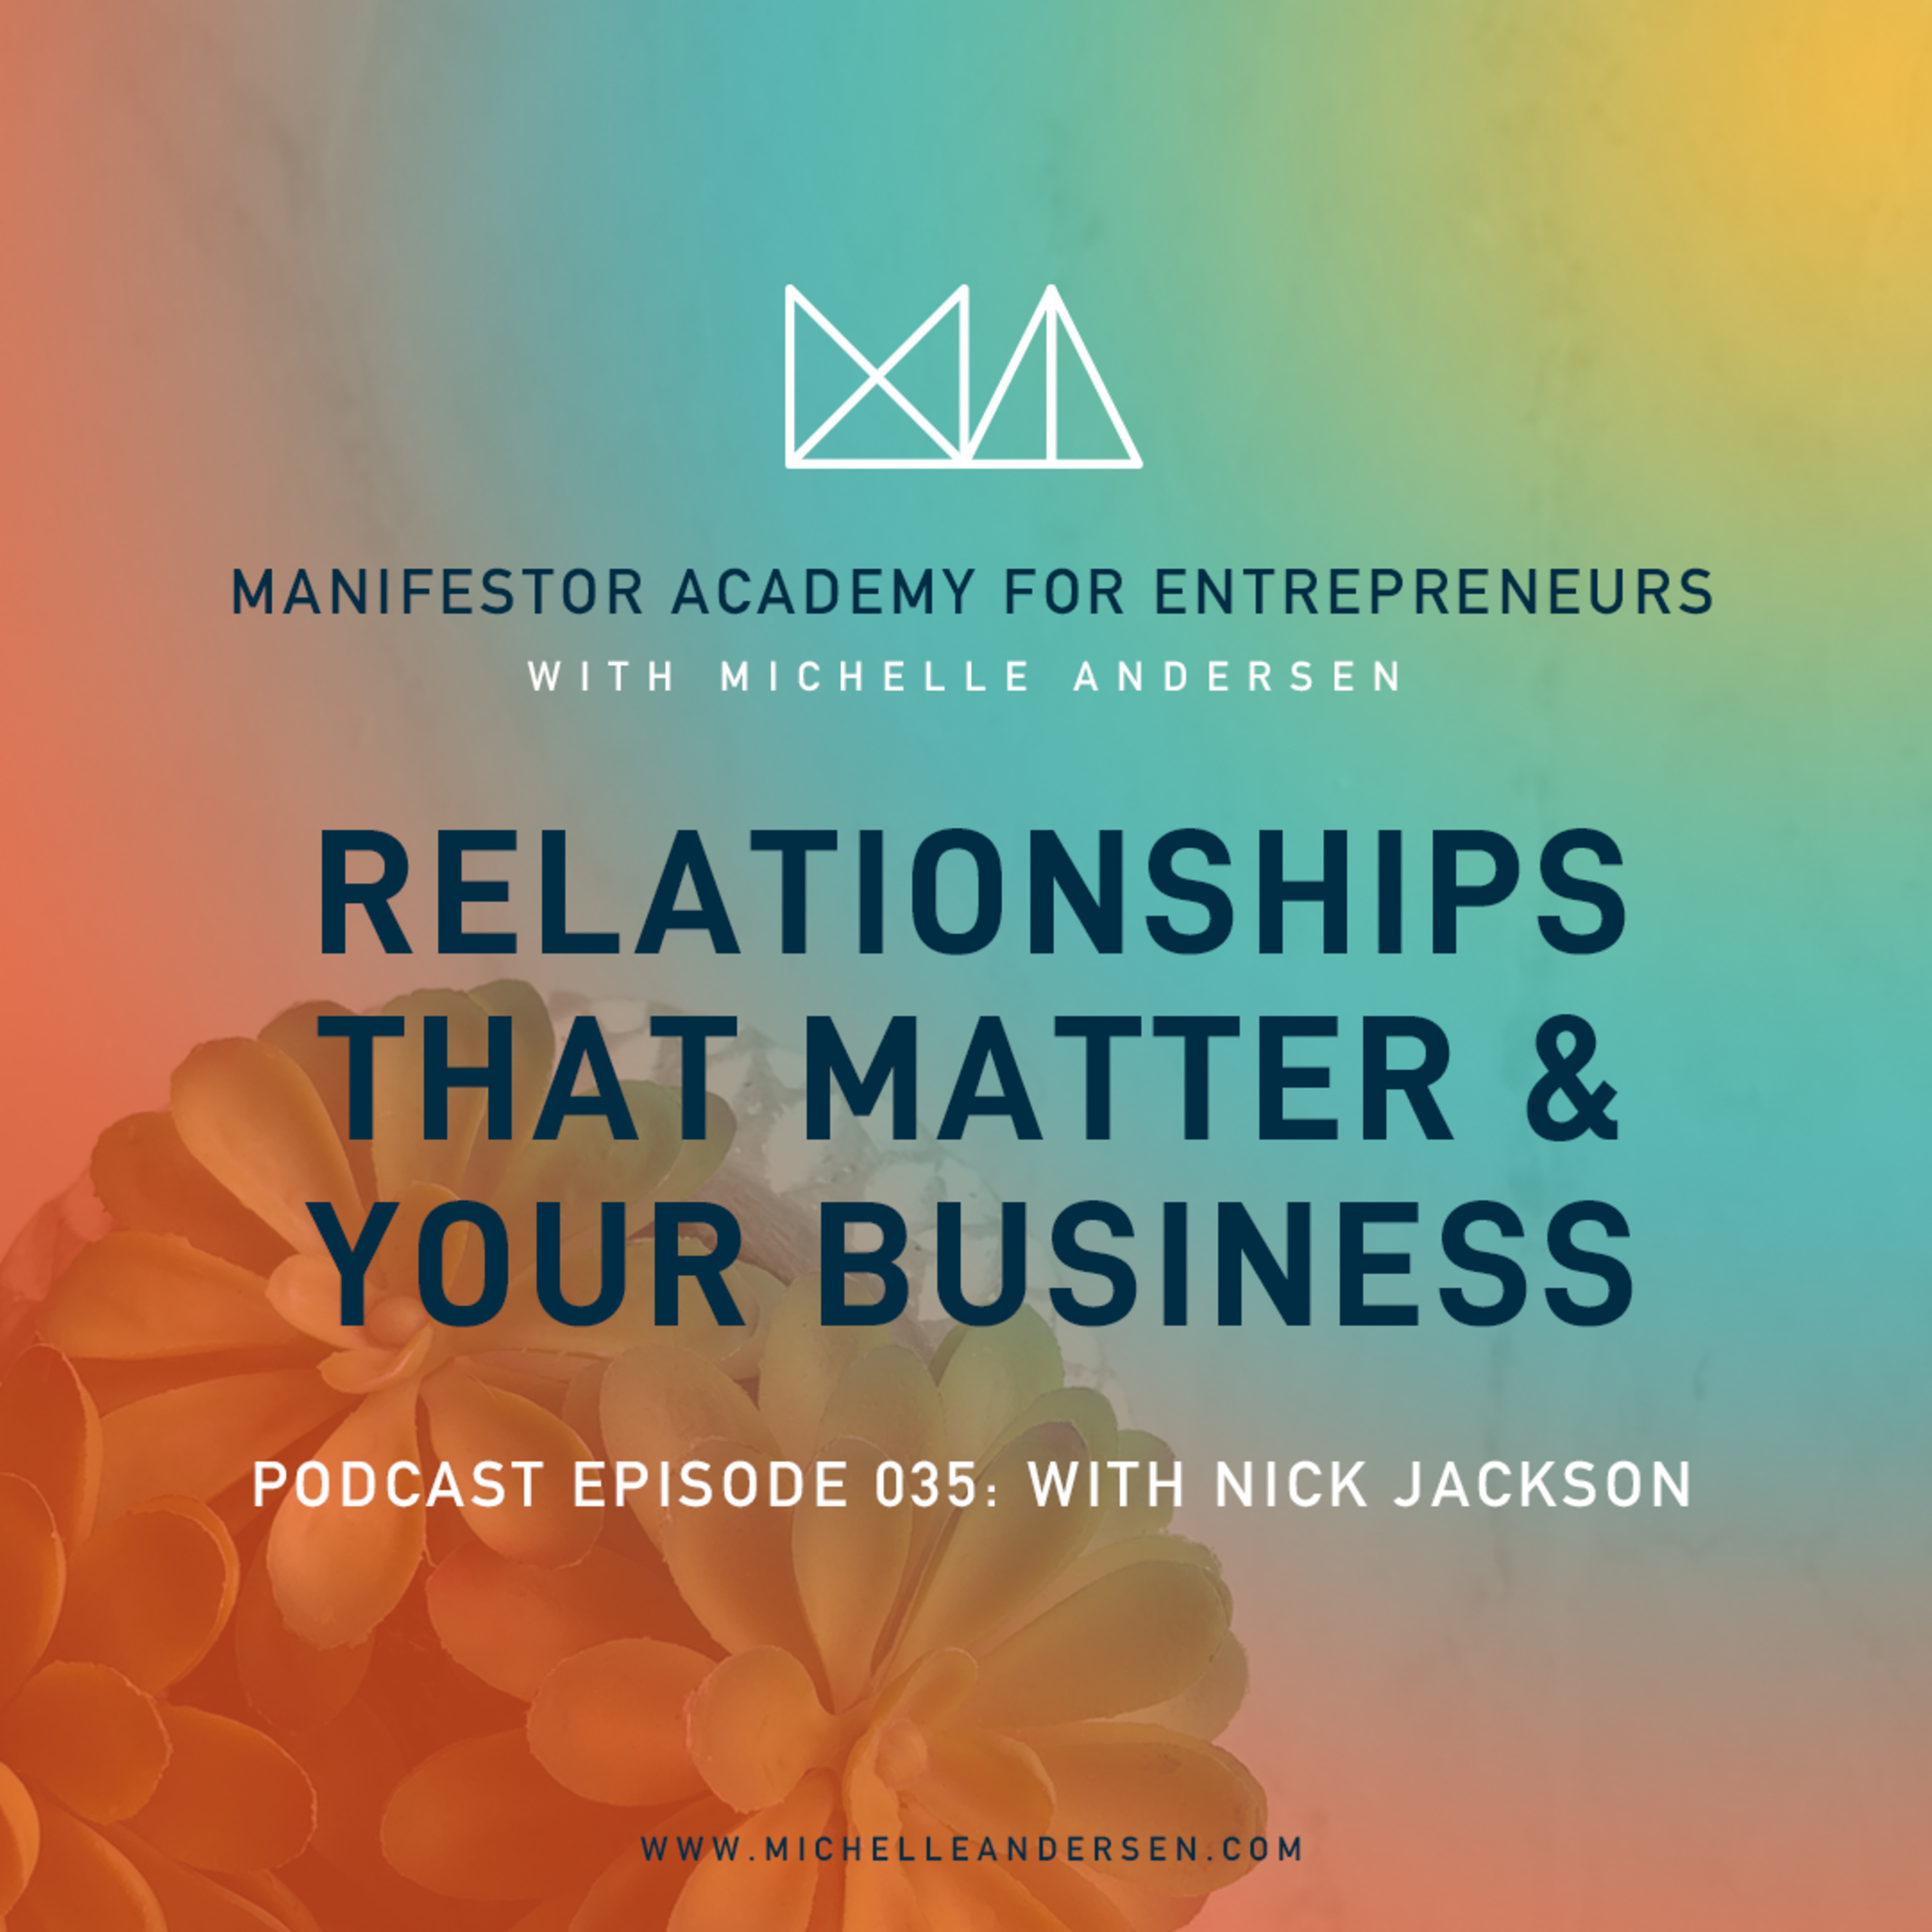 Nick Jackson on Relationships that Matter & Your Business